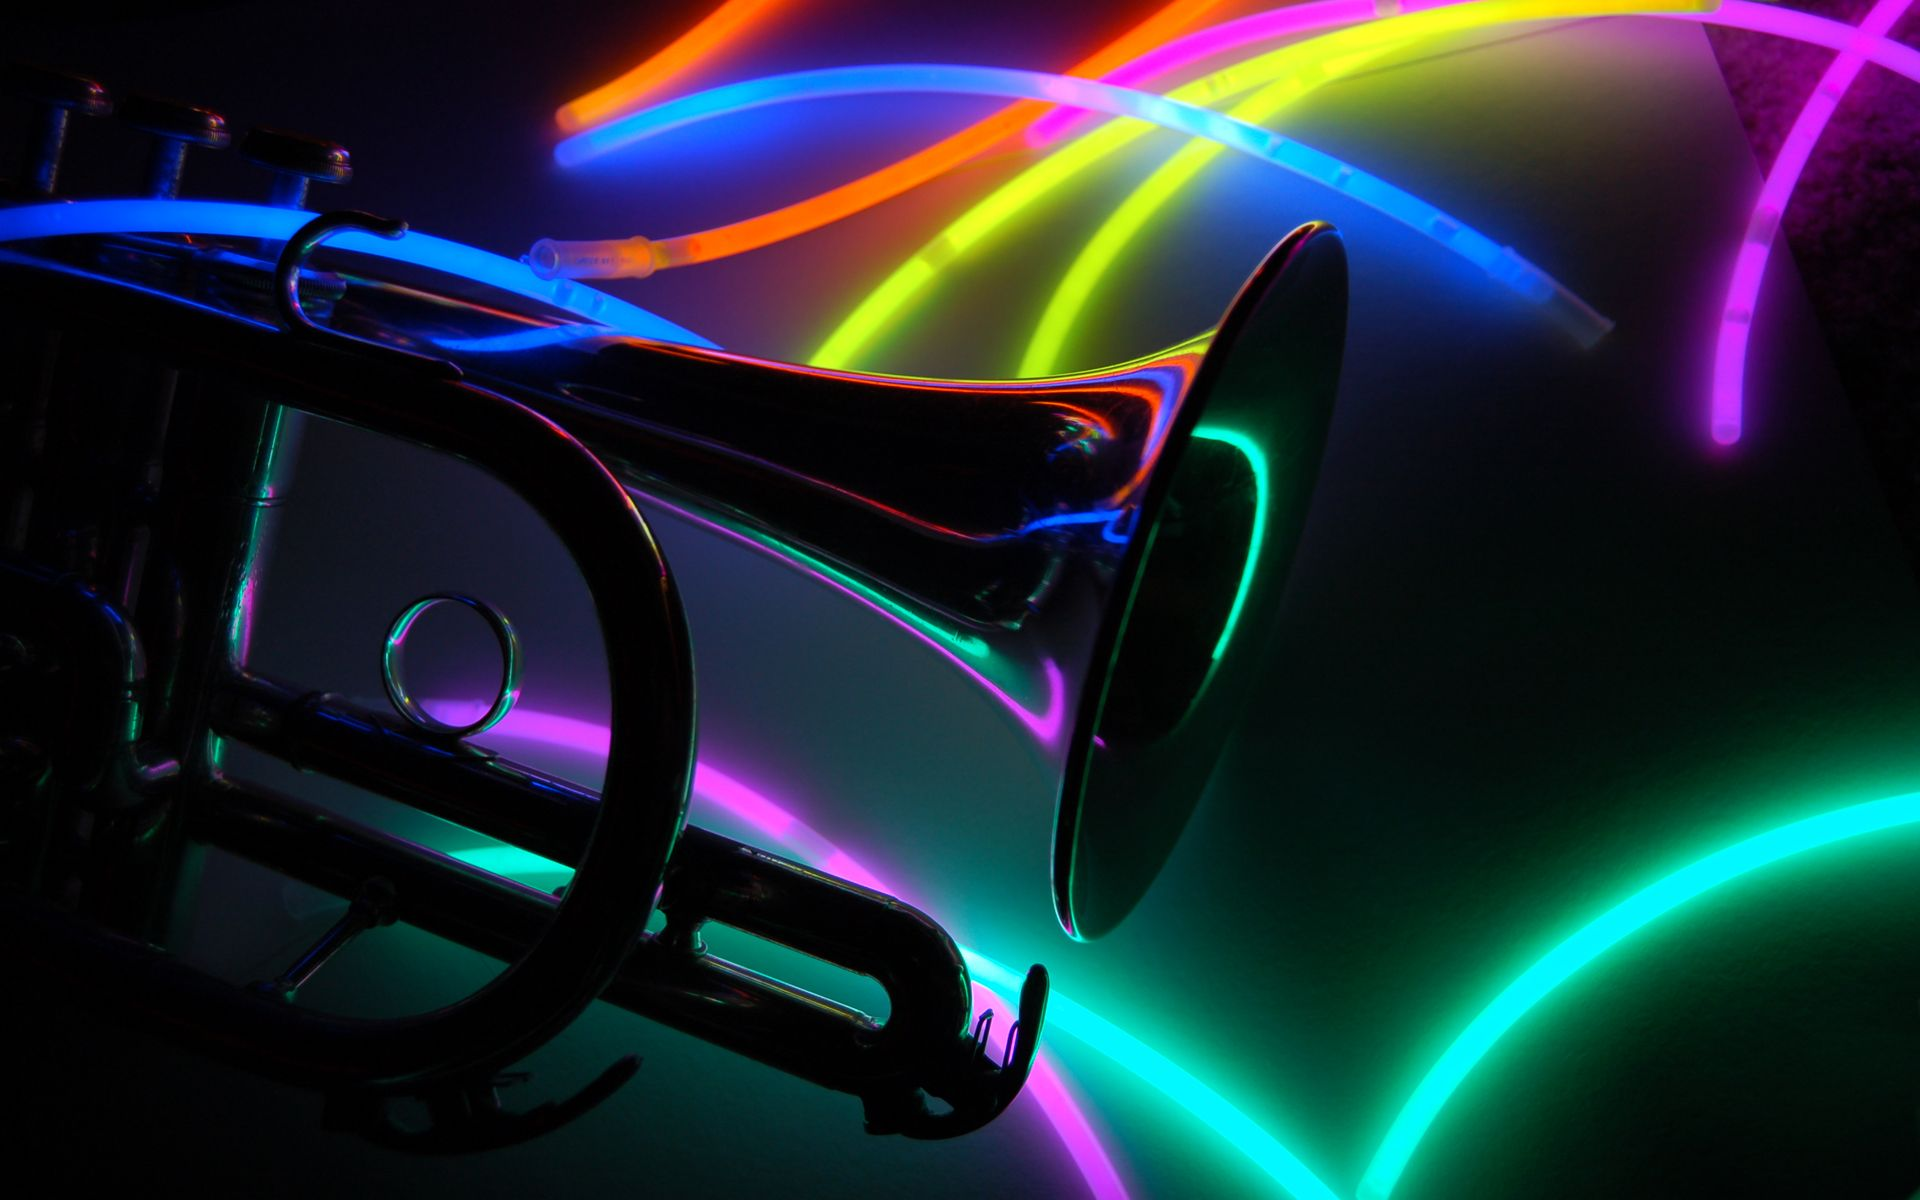 Neon Music Notes Background: Neon Music Notes Background